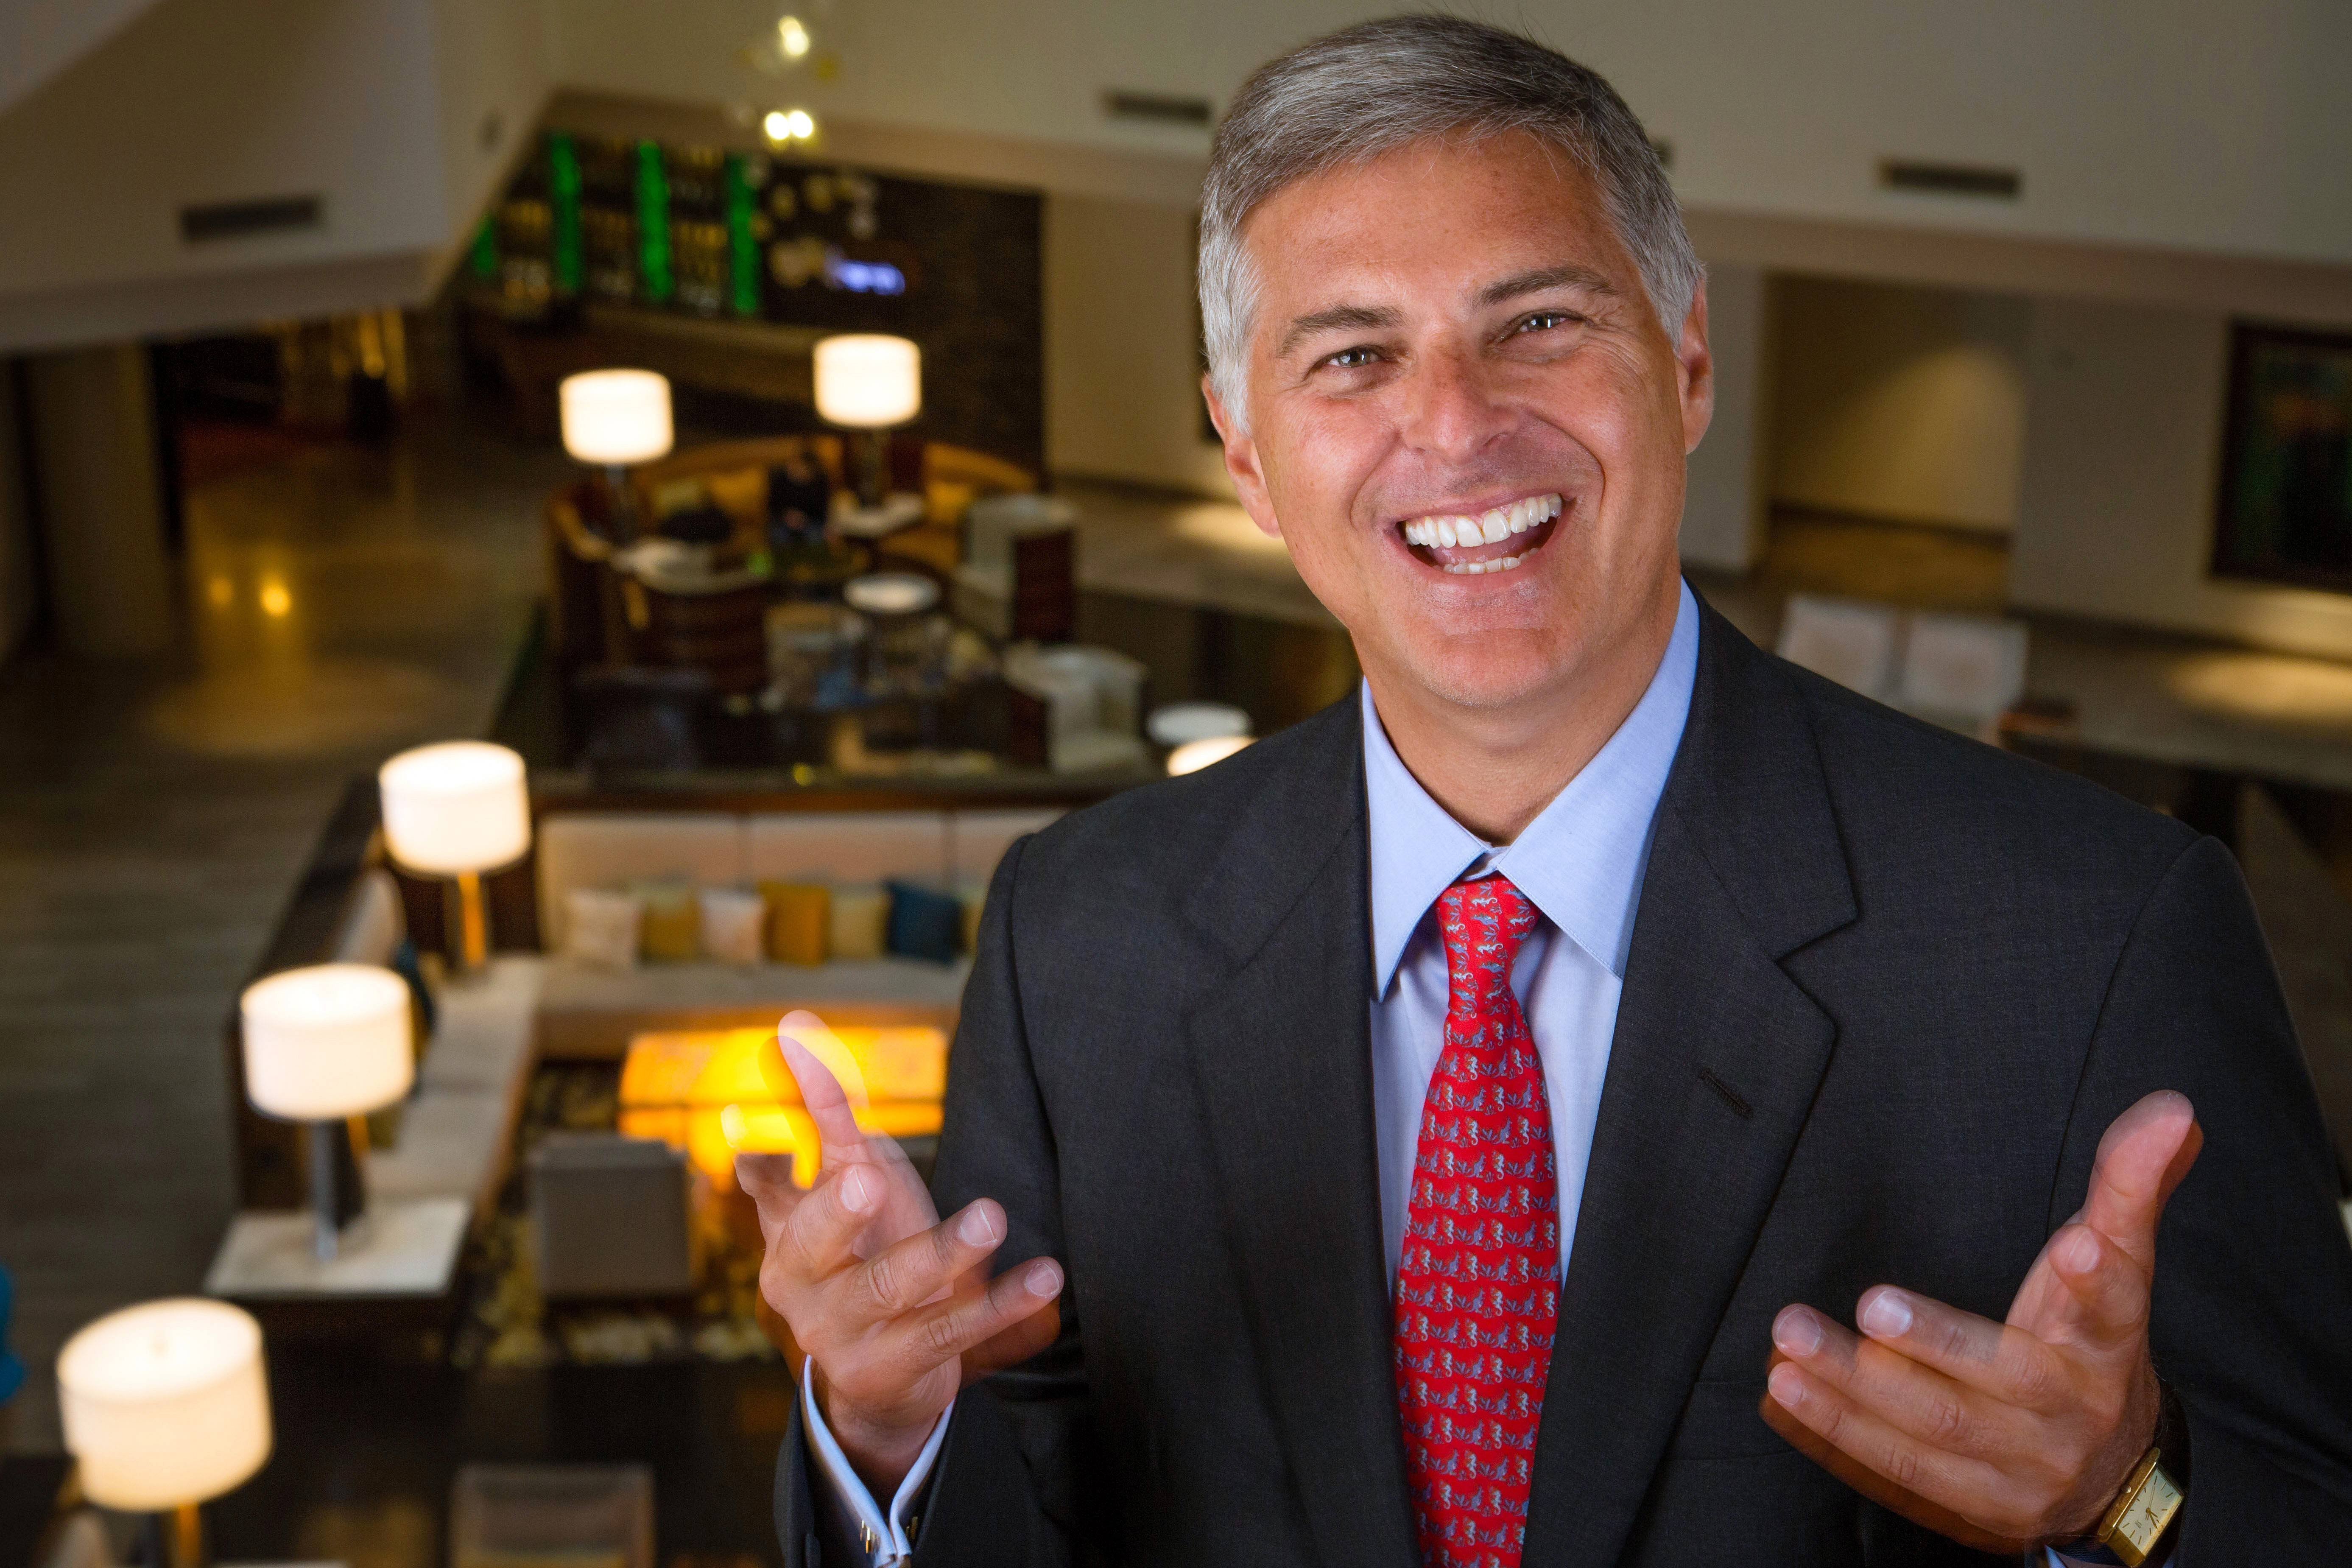 Hilton CEO Chris Nassetta in the Hilton Tysons Corner Hotel in McLean, Va. When Nassetta took over as CEO in 2007, Hilton lagged behind other hoteliers. Today, Hilton Worldwide is the largest hotelier in the world, by rooms, with 679,000 rooms.